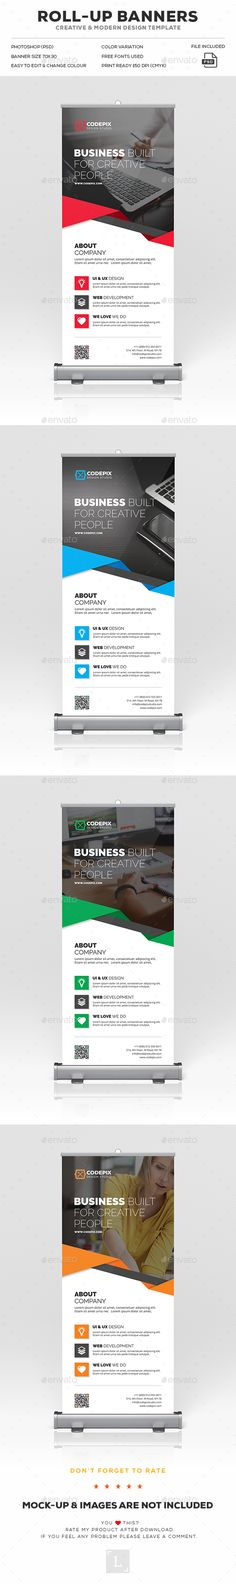 Roll-Up Banner Template PSD. Download here: https://graphicriver.net/item/rollup-banner/17535197?ref=ksioks